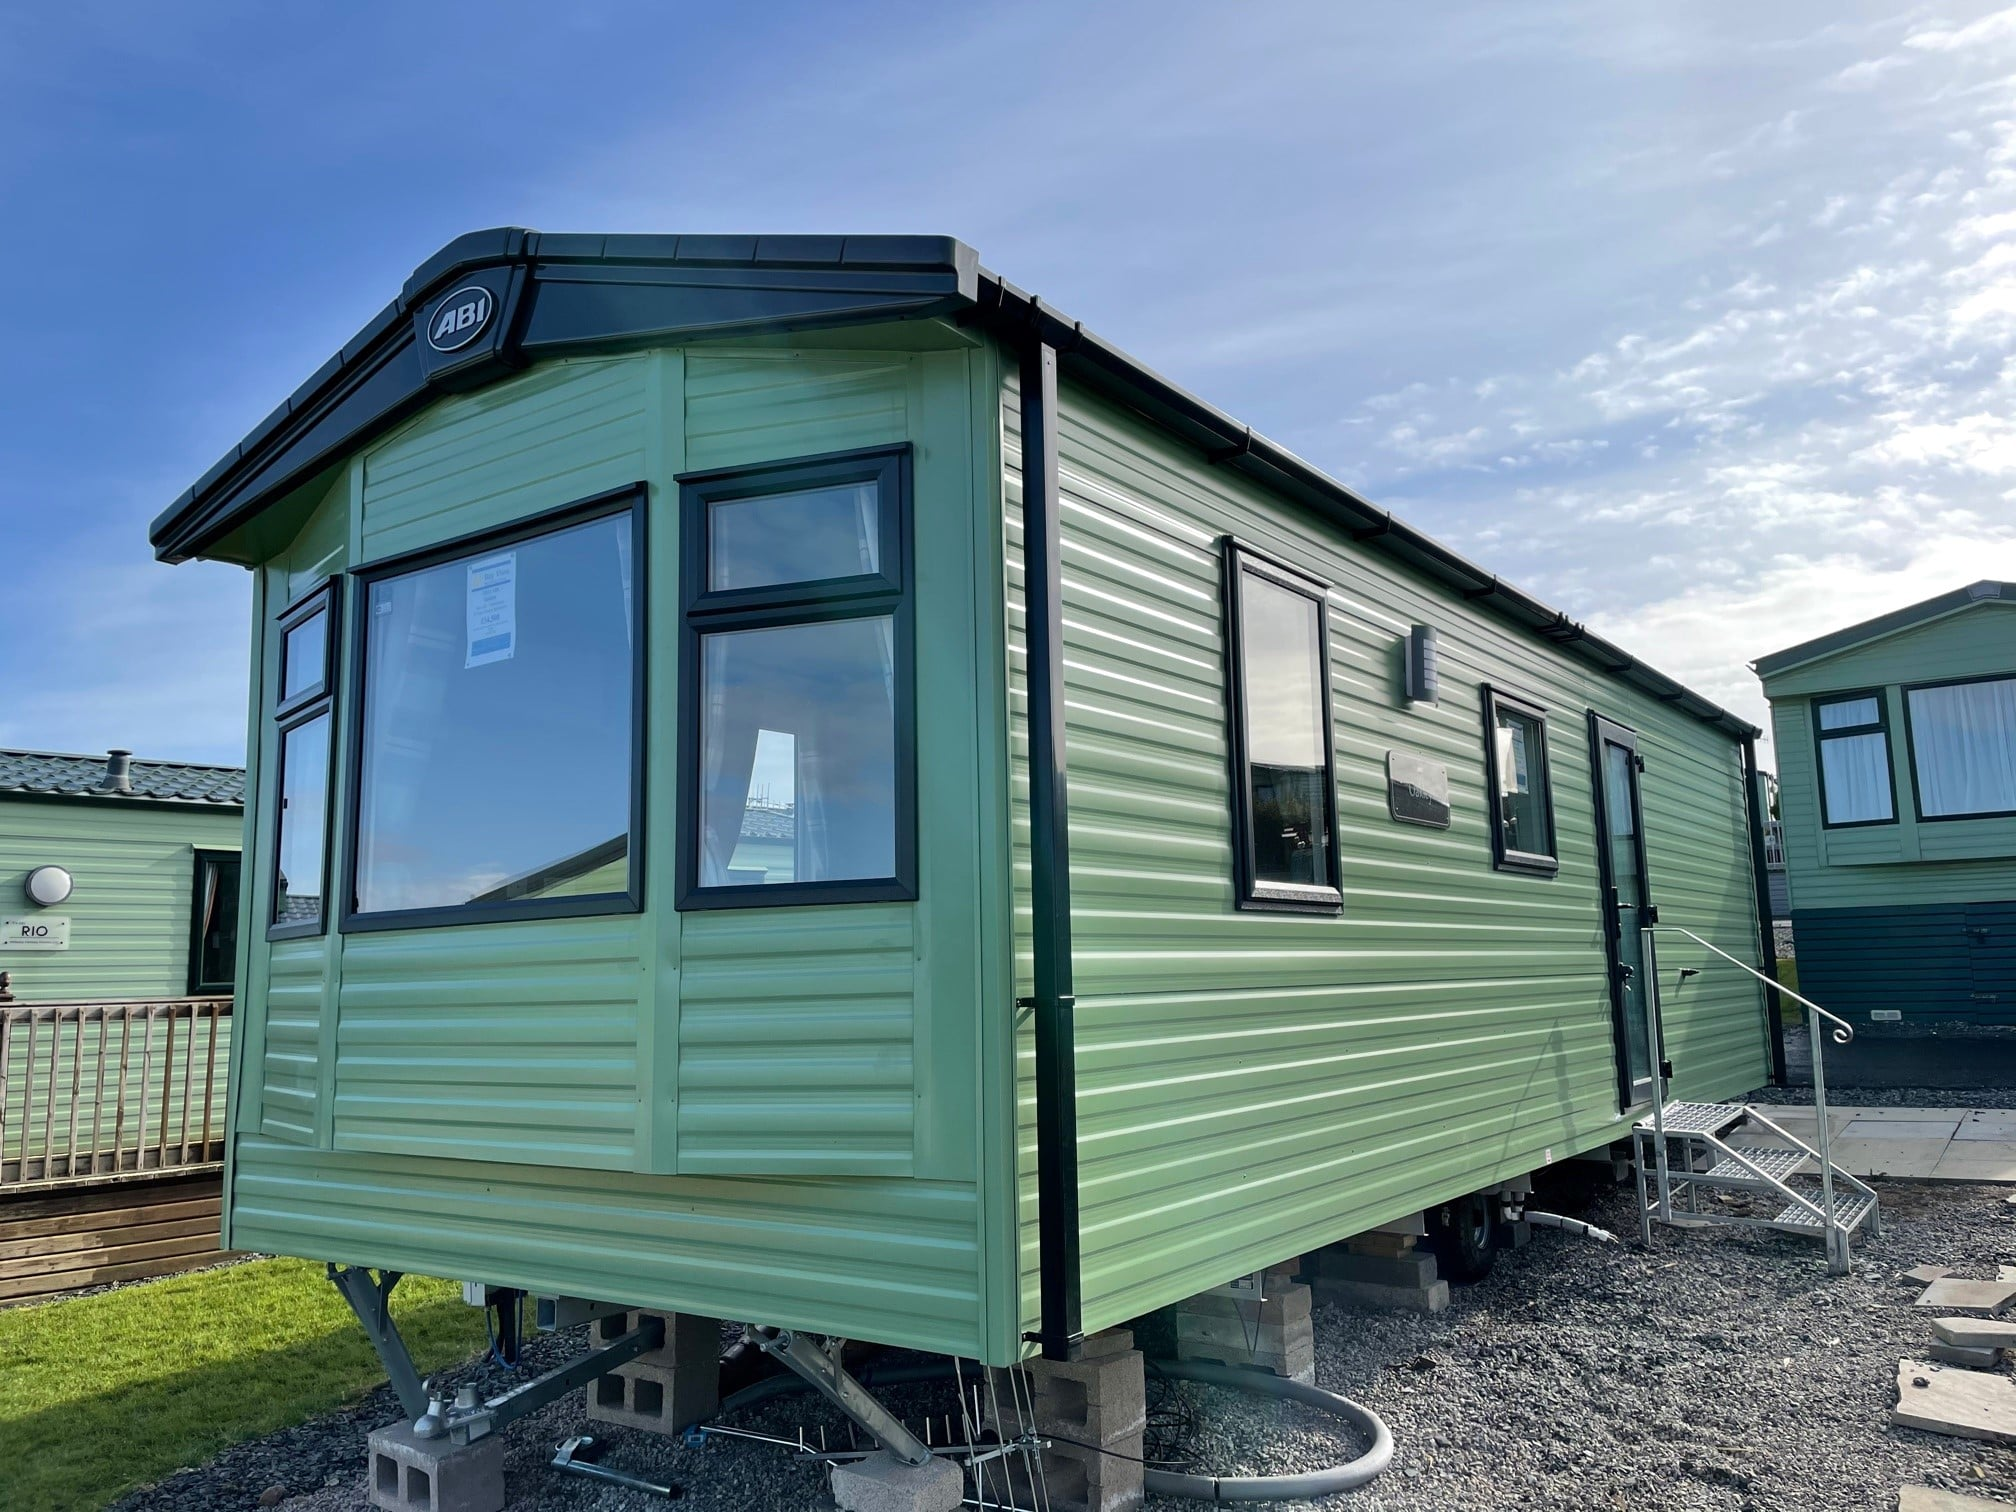 2021 ABI Oakley at Bay View Holiday Park North West Morecambe Bay - Bay window